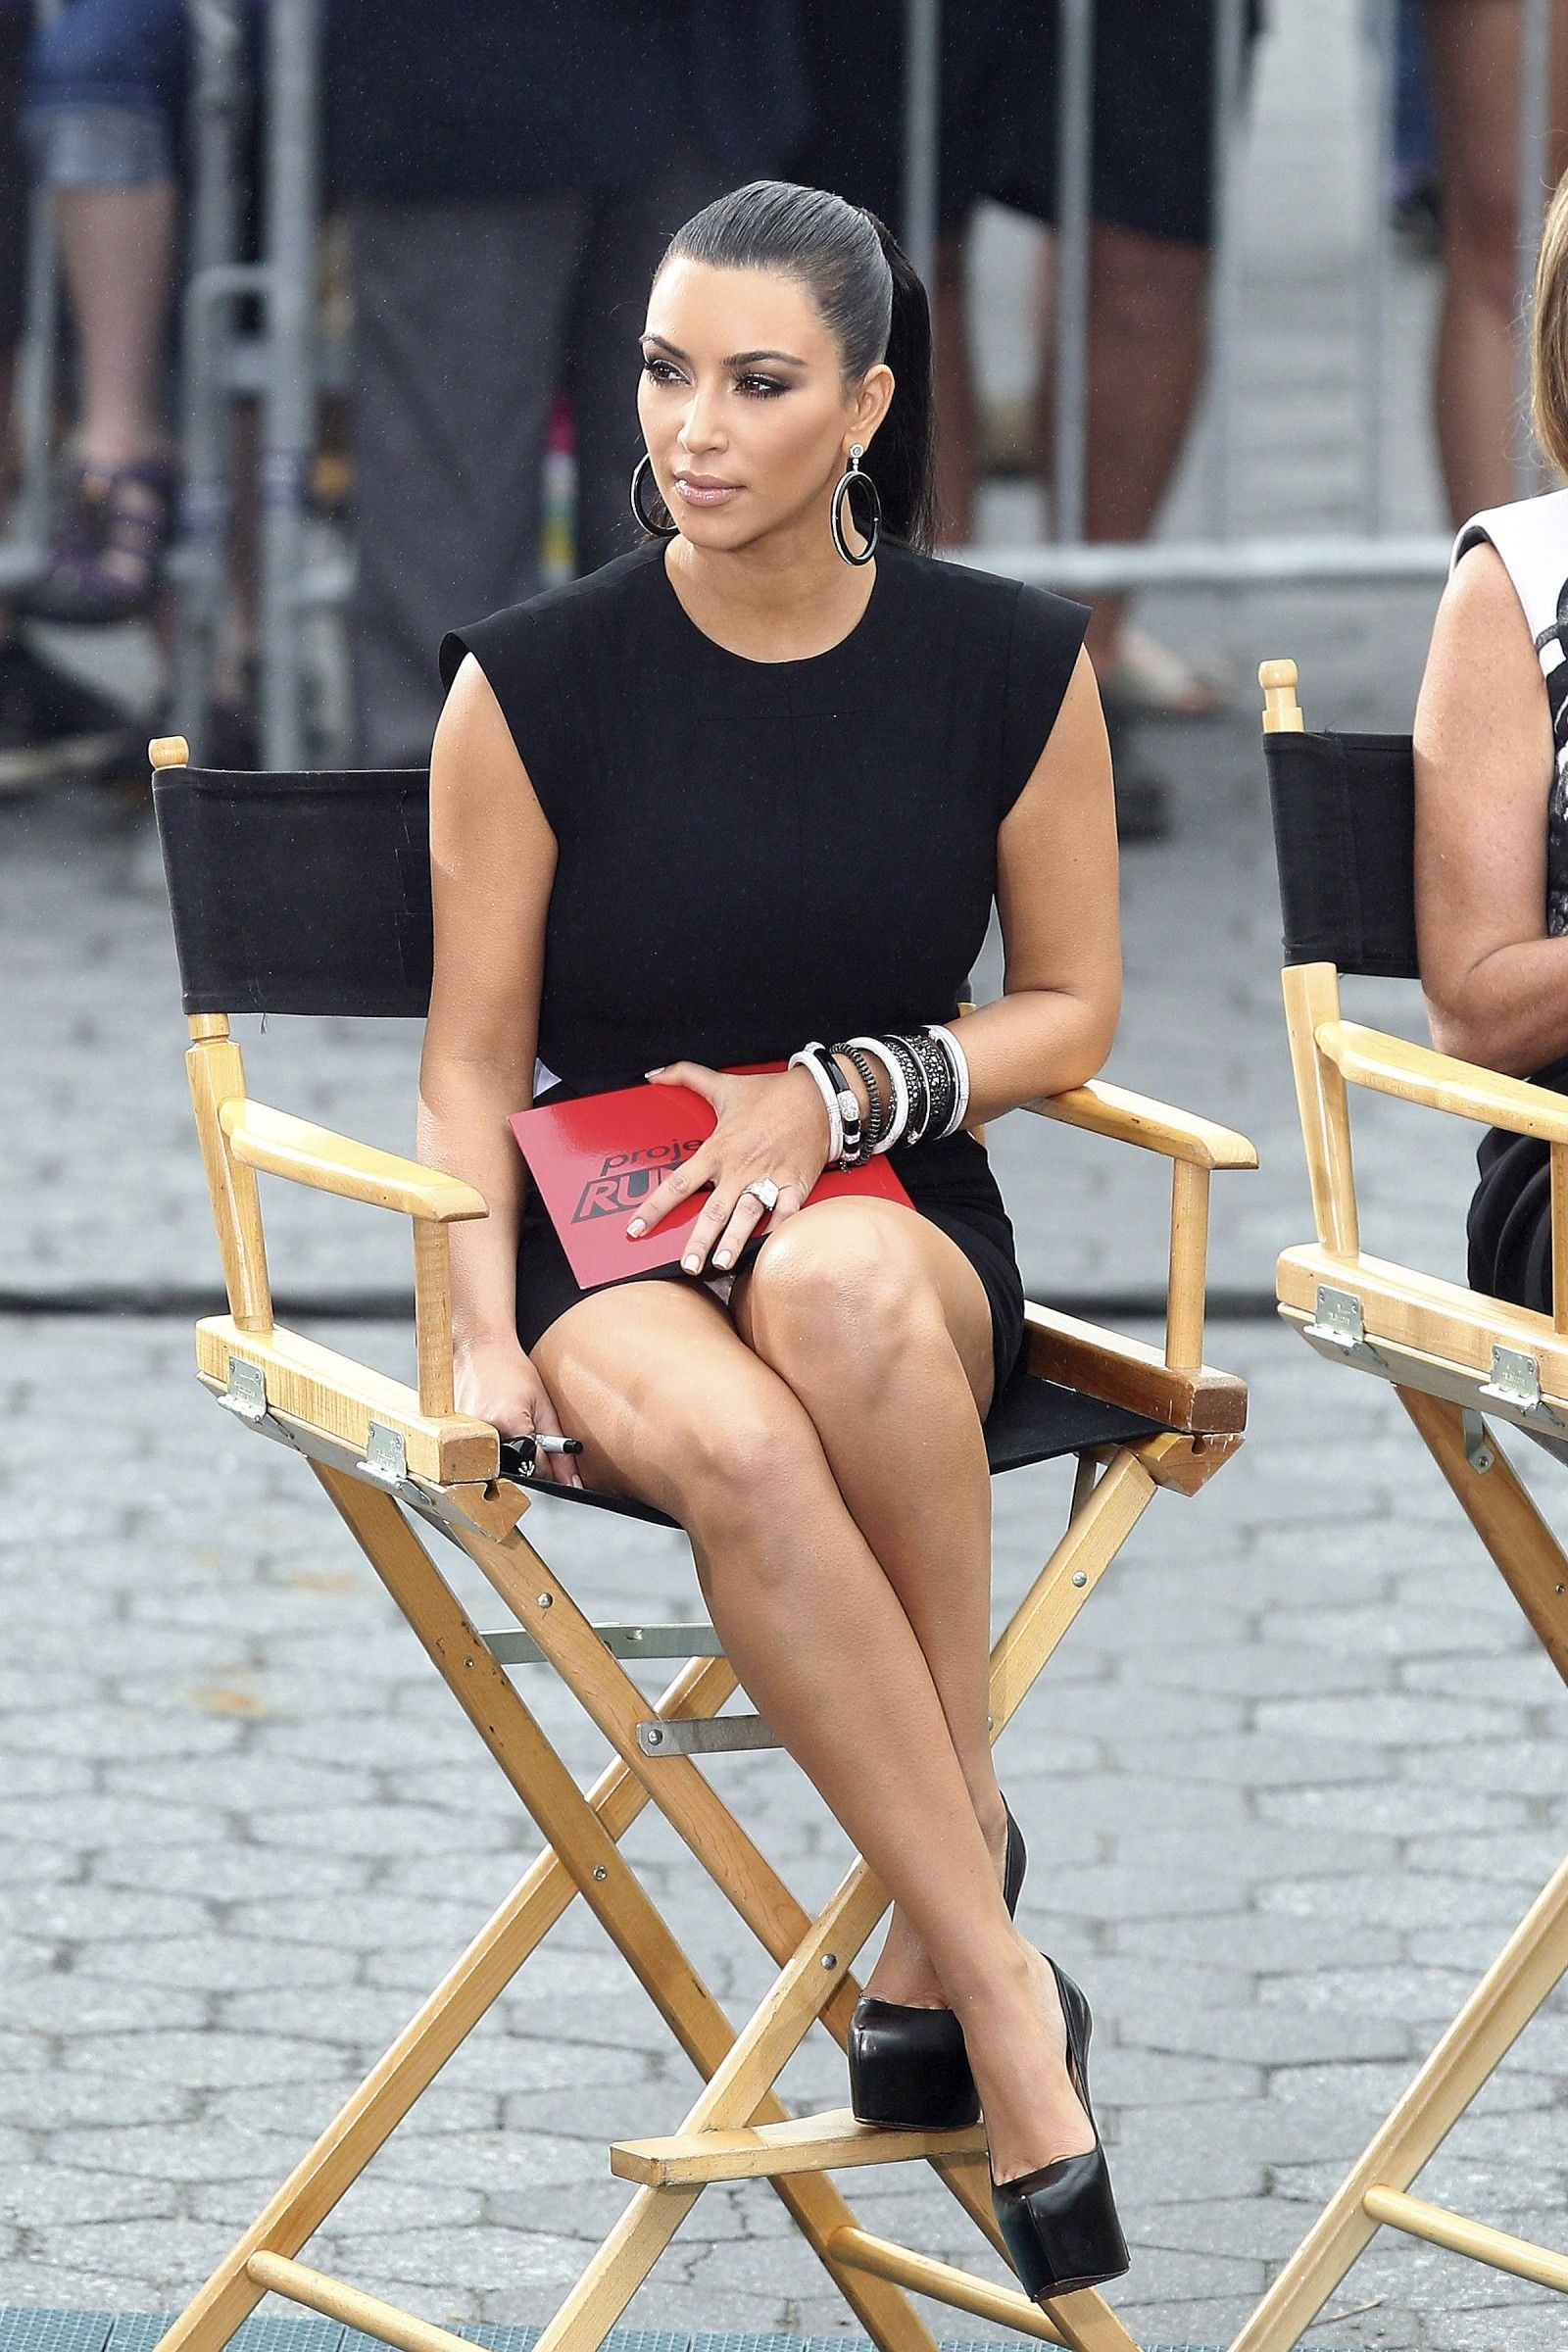 Upskirt Candids At Project Runway In New York Kim Kardashian Photo Like The Upper Part Of Her Body The Legs Are Not In The Best Position